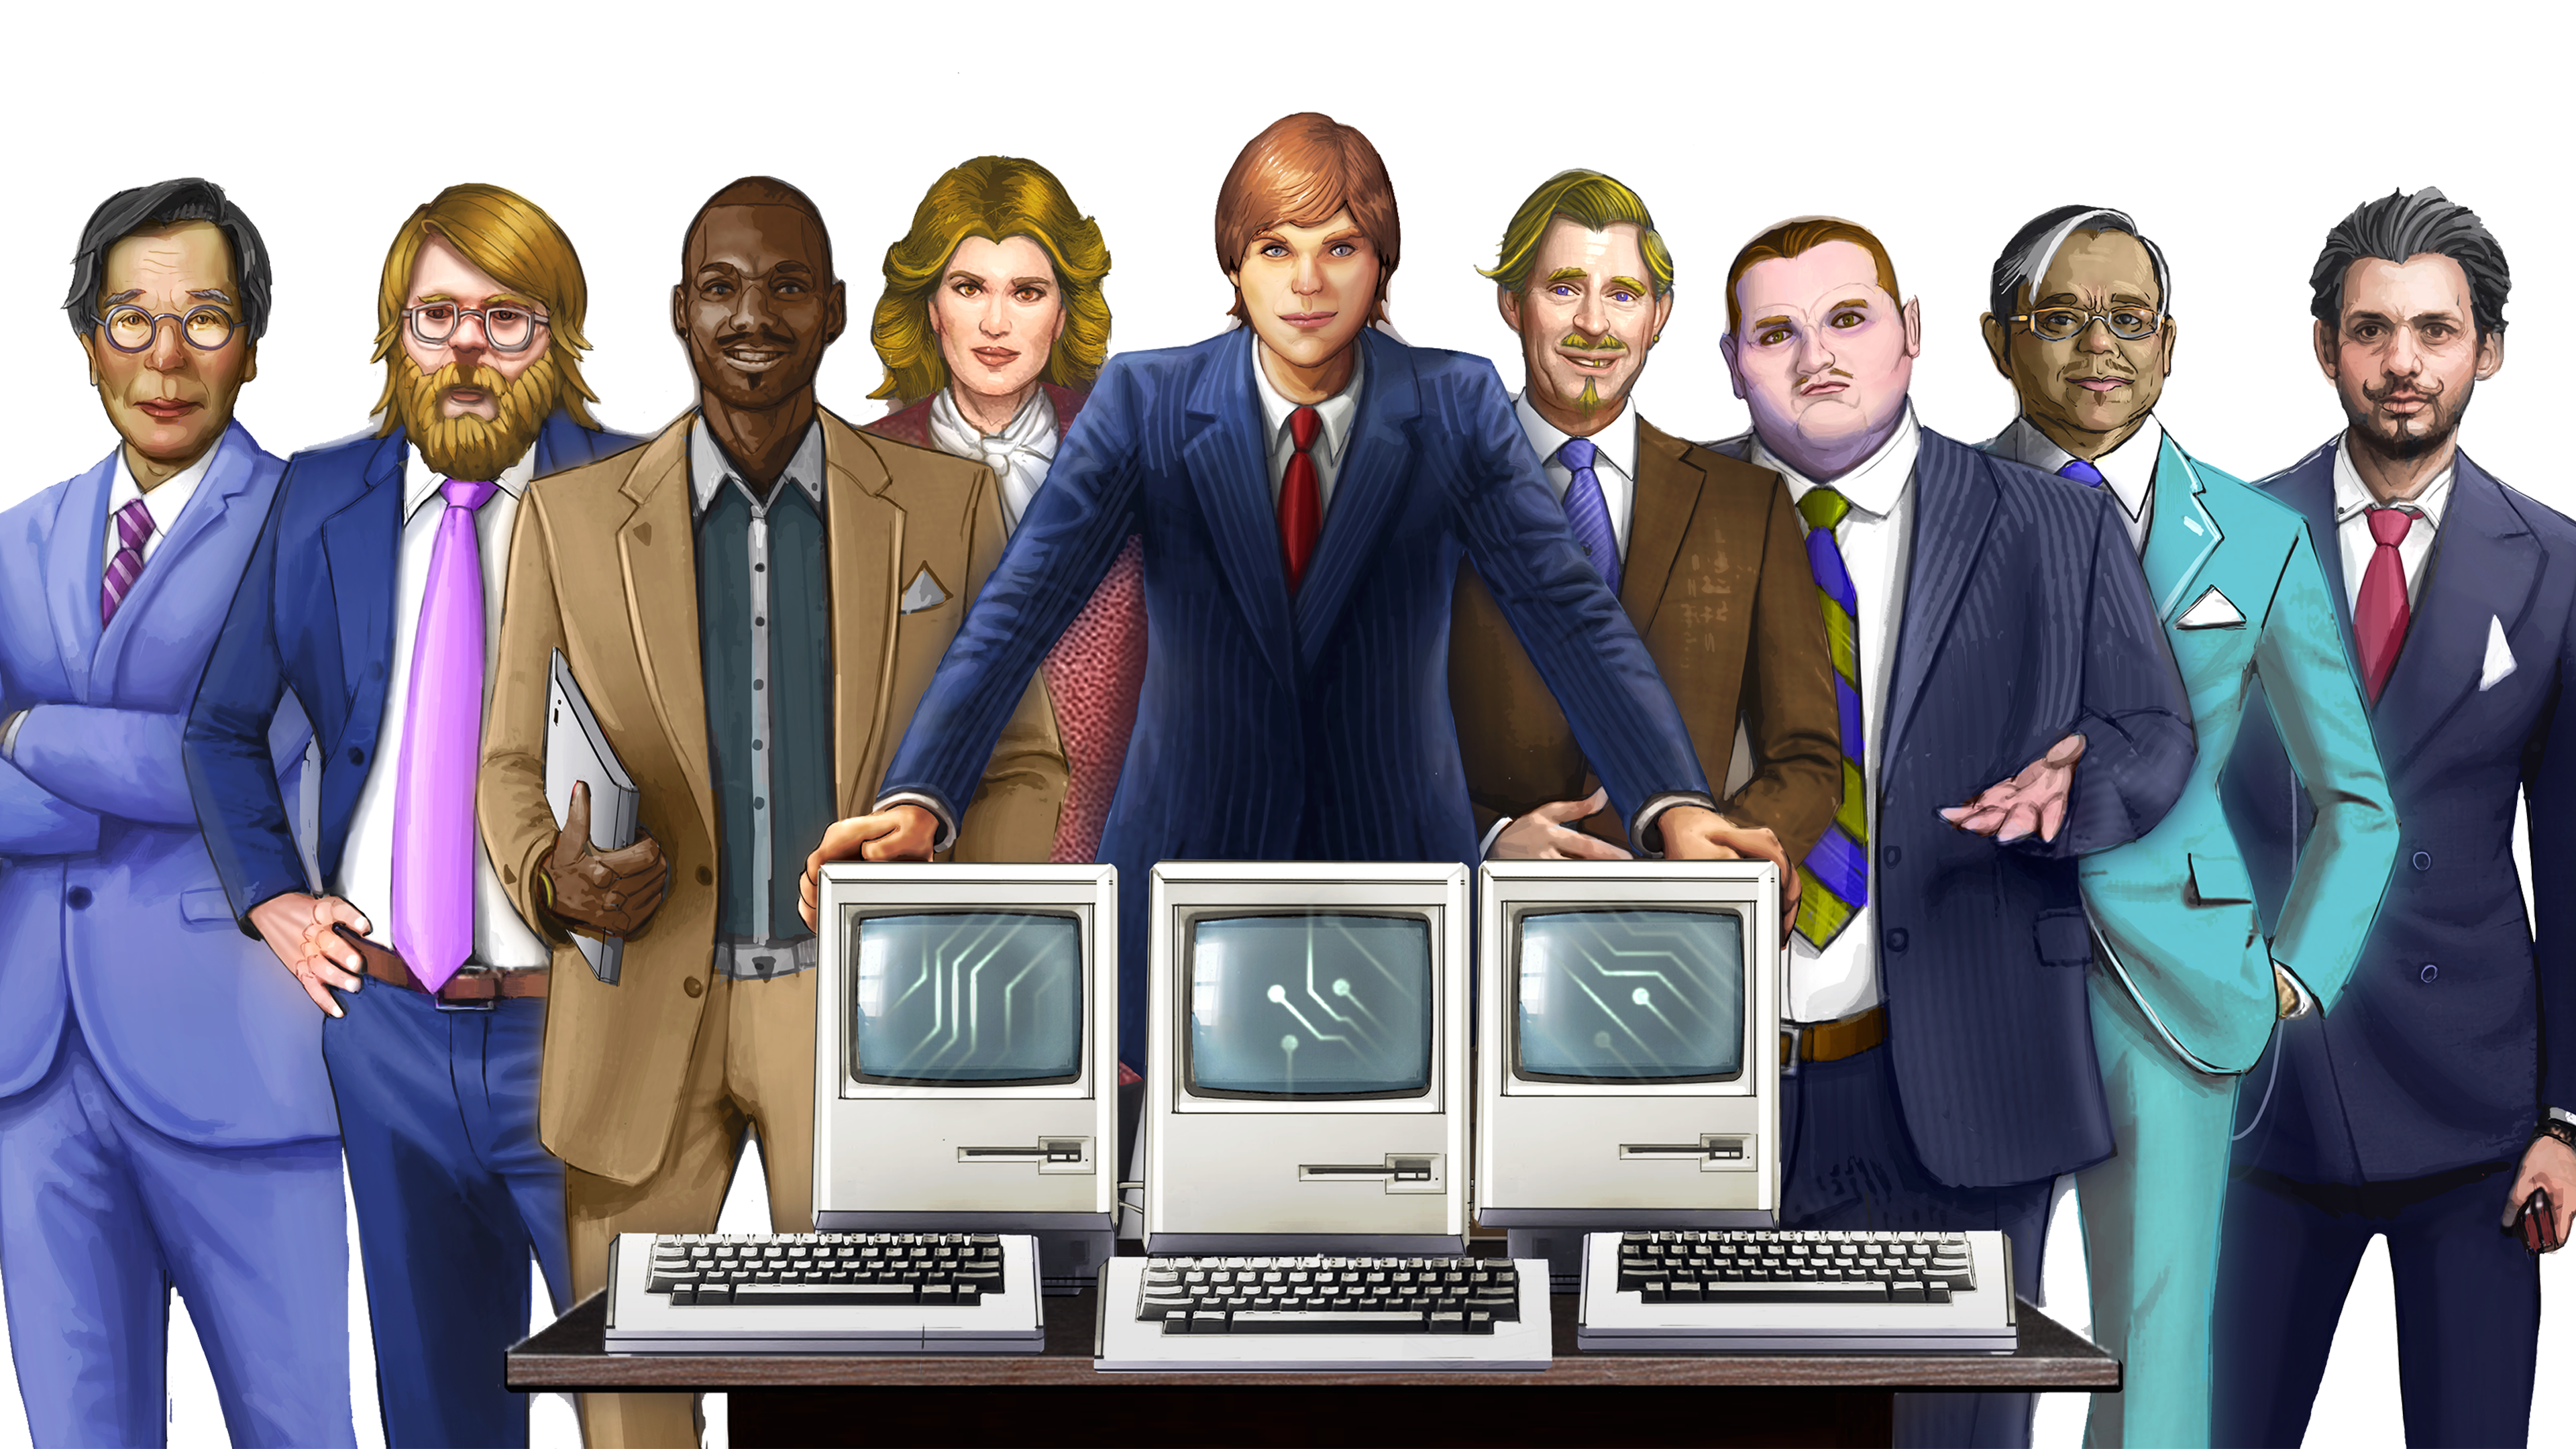 Computer Tycoon - Grand Strategy Management Game about Computer History.